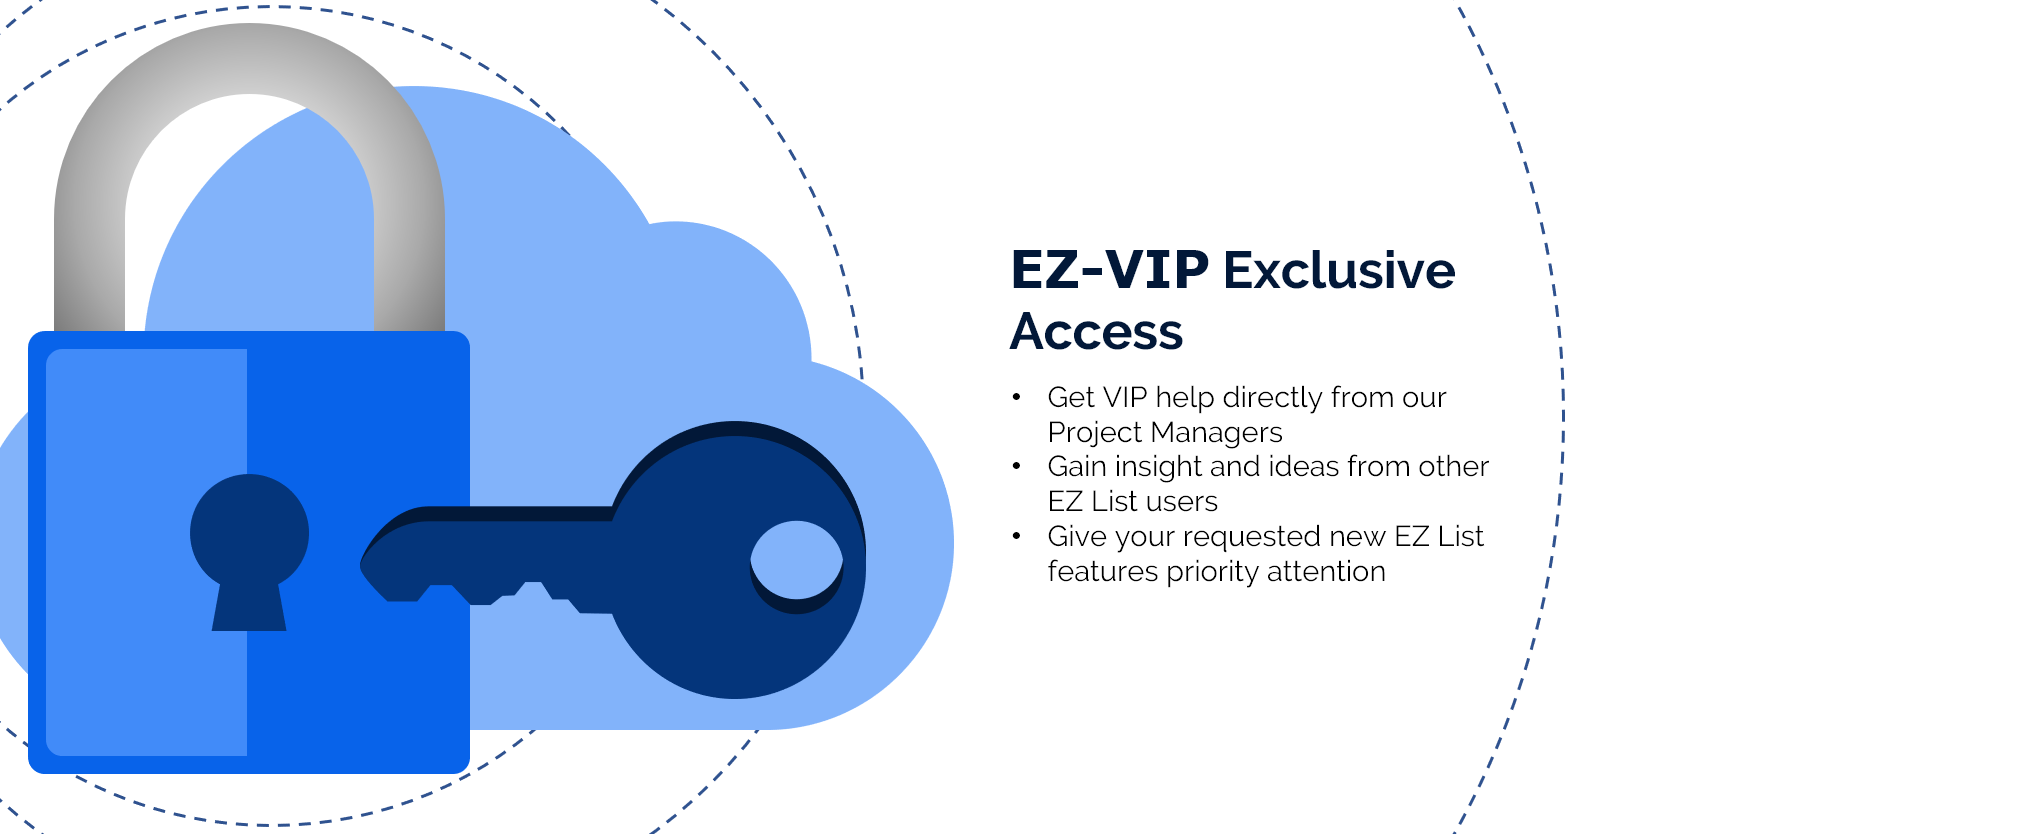 EZinEXCEL - EZ VIP Exclusive Access